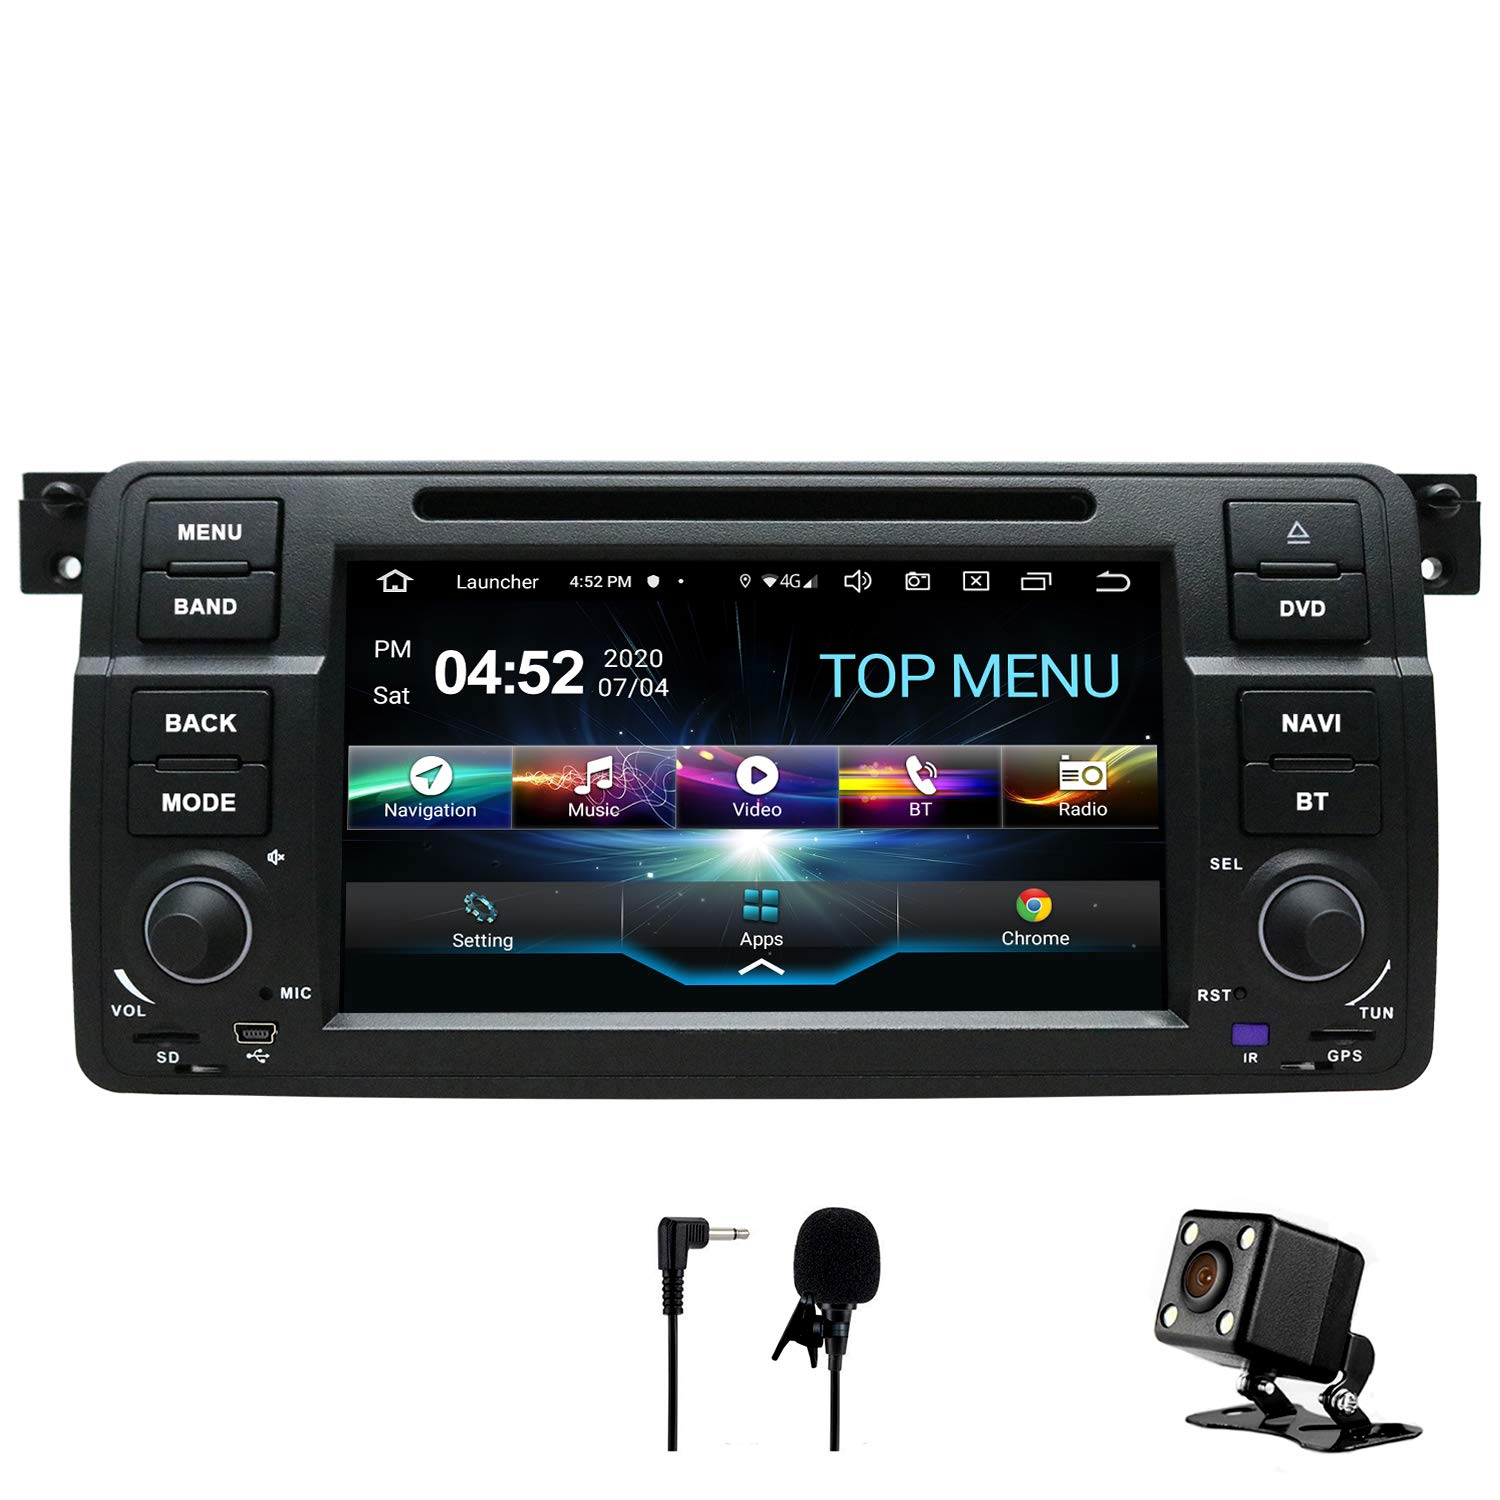 SWTNVIN Android 10.0 Car Audio Stereo Headunit Fits for BMW E46 DVD Player Radio 7 Inch HD Touch Screen GPS Navigation with Bluetooth WIFI Steering Wheel Control 2GB+32GB